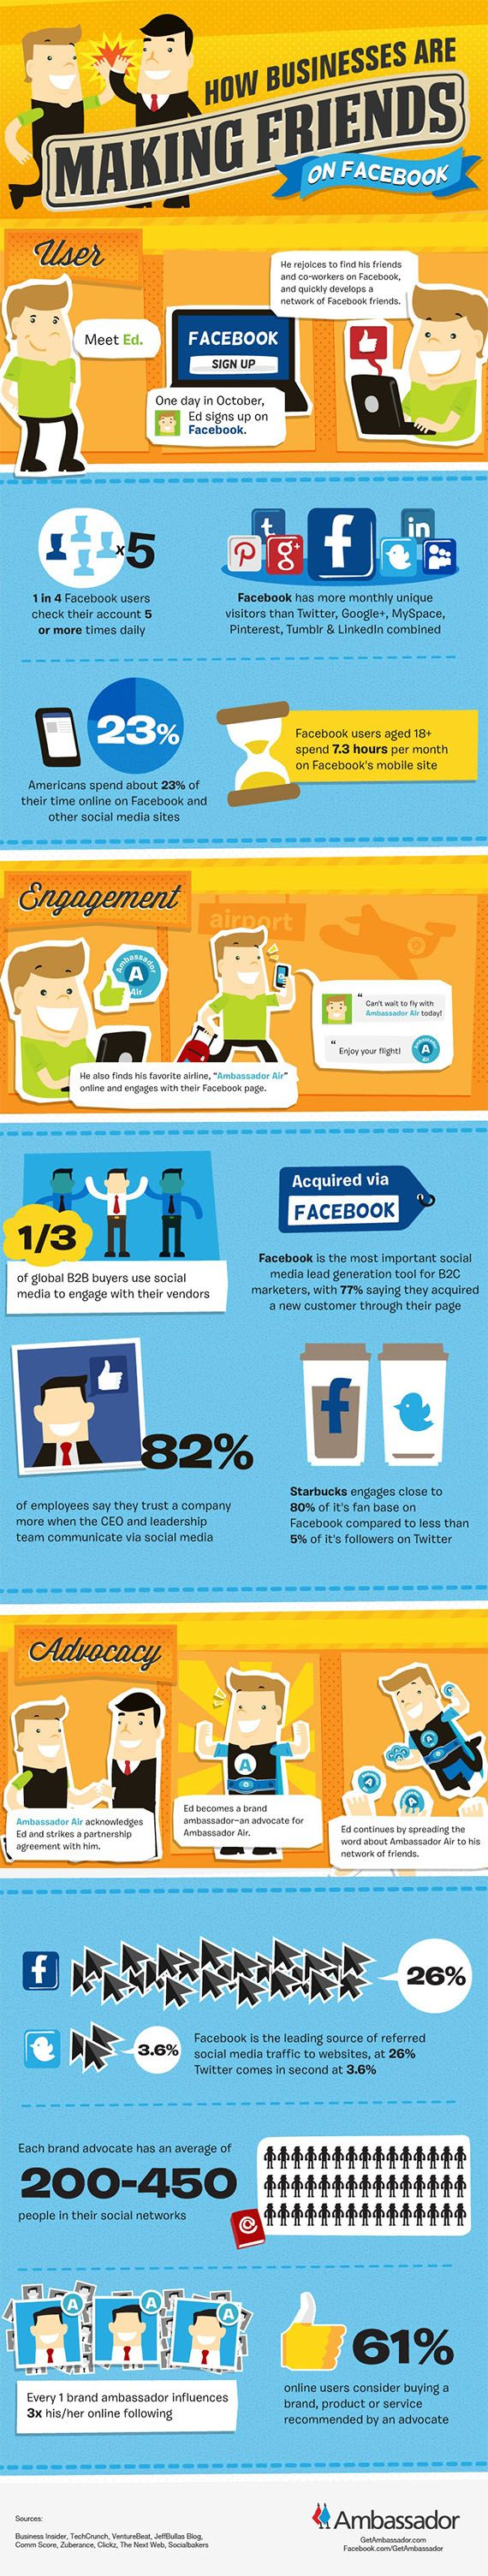 Why Word Of Mouth Marketing Works On Facebook